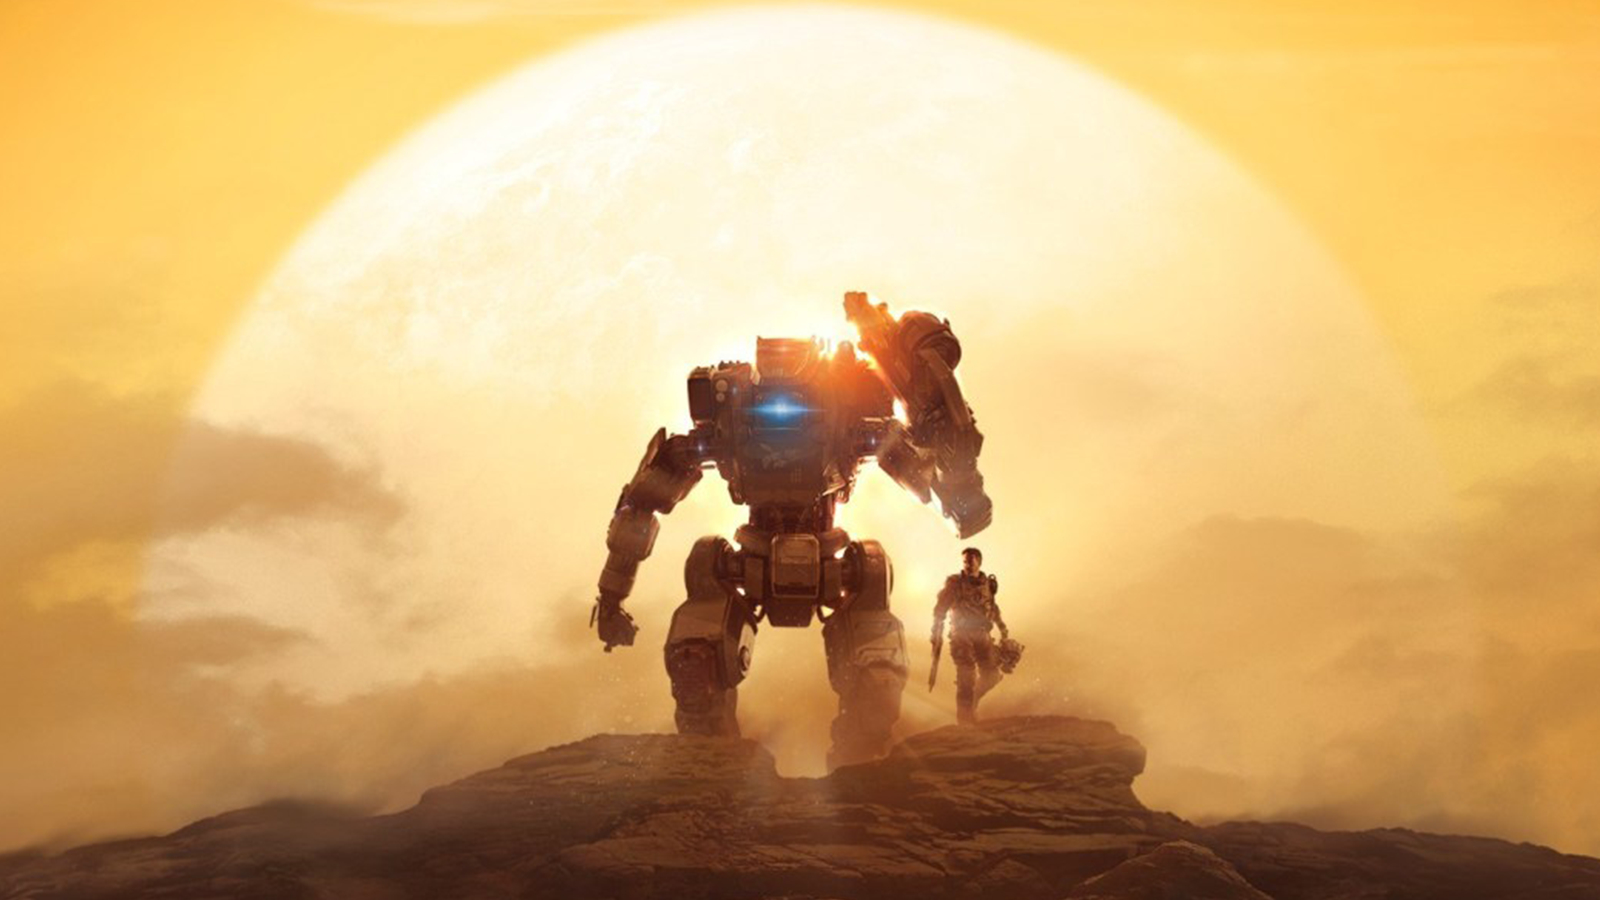 The Titanfall franchise has been left in limbo since EA acquired Respawn Entertainment.